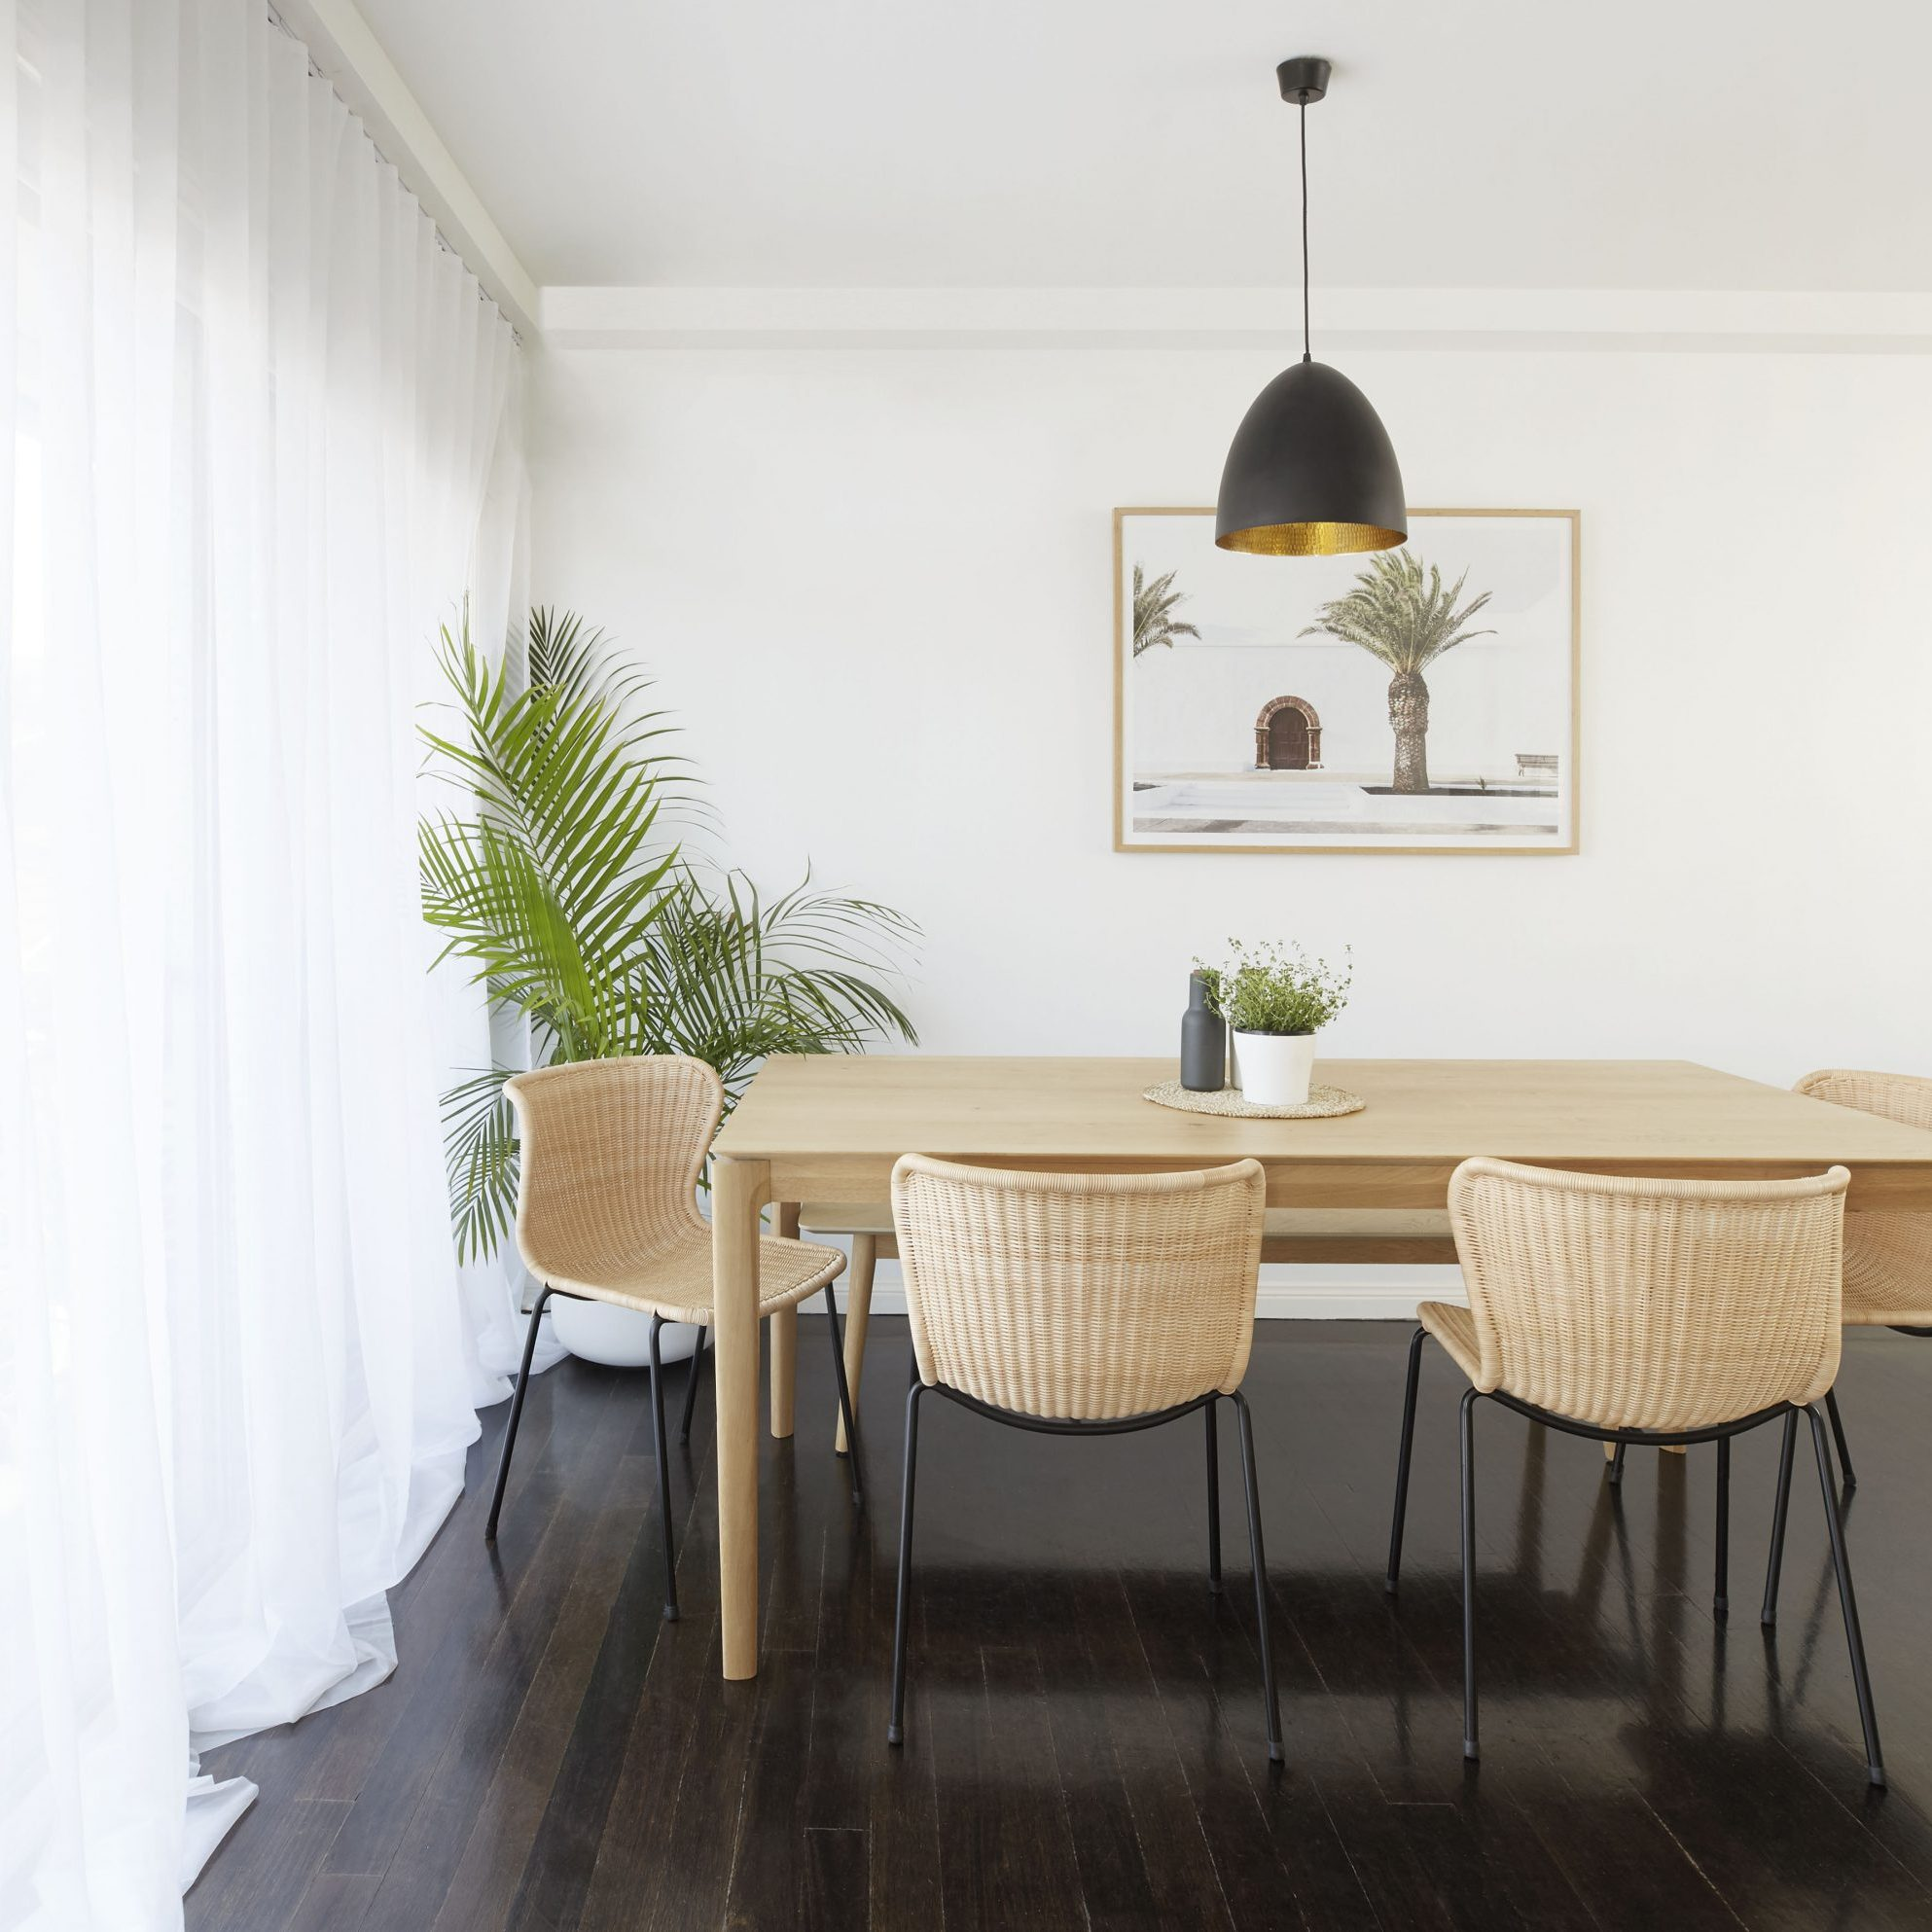 Simple Refresh, Simple Step Light and bright, sheers, sunlight, dining table, plants